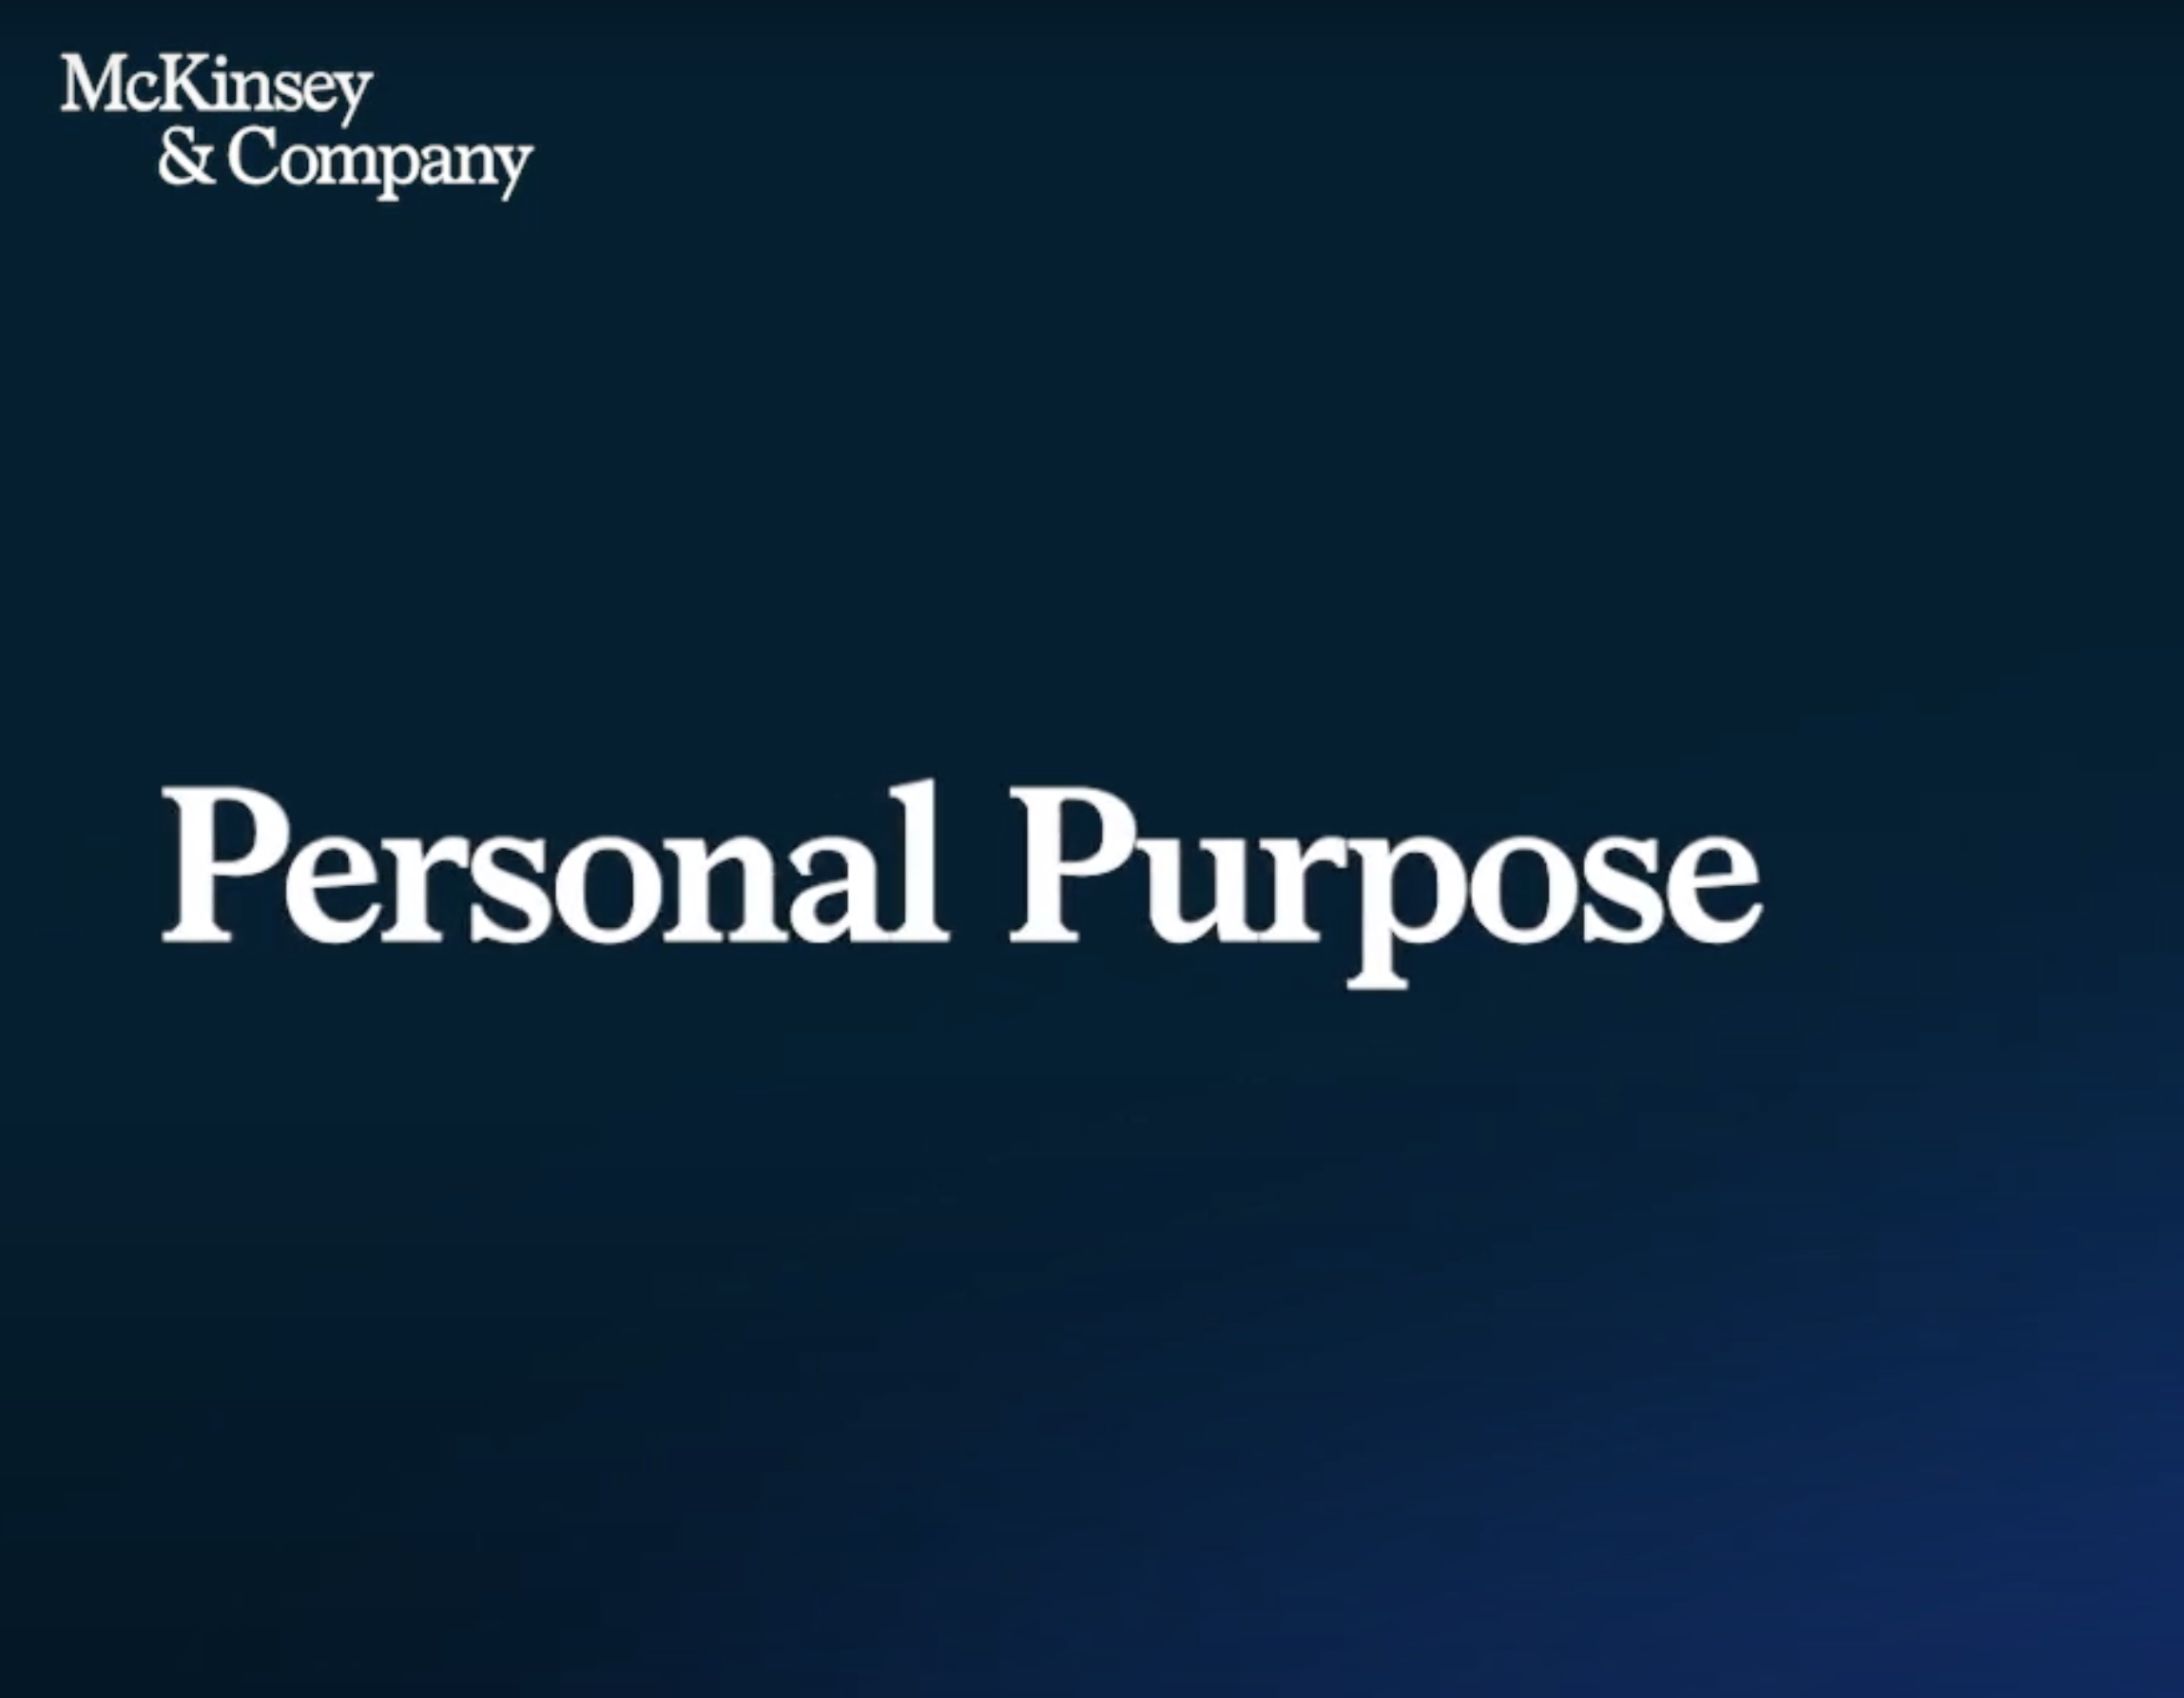 Leading with purpose and humanity: A conversation with Hubert Joly